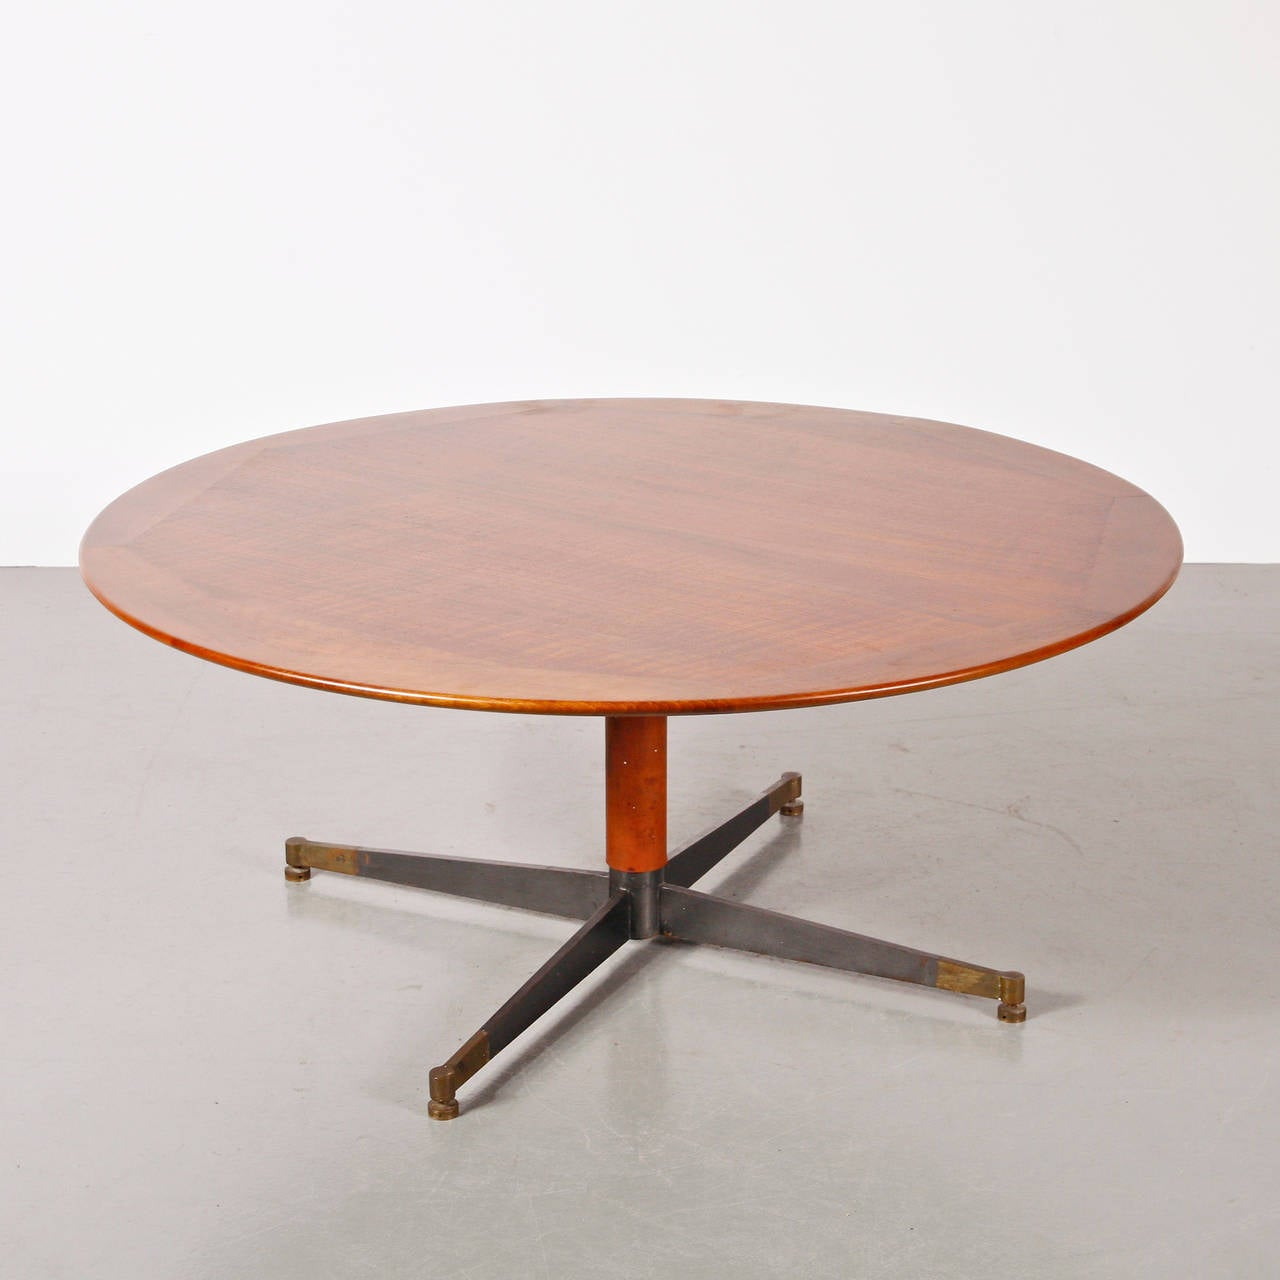 1950s Jacques Adnet Coffee TableProduced in France